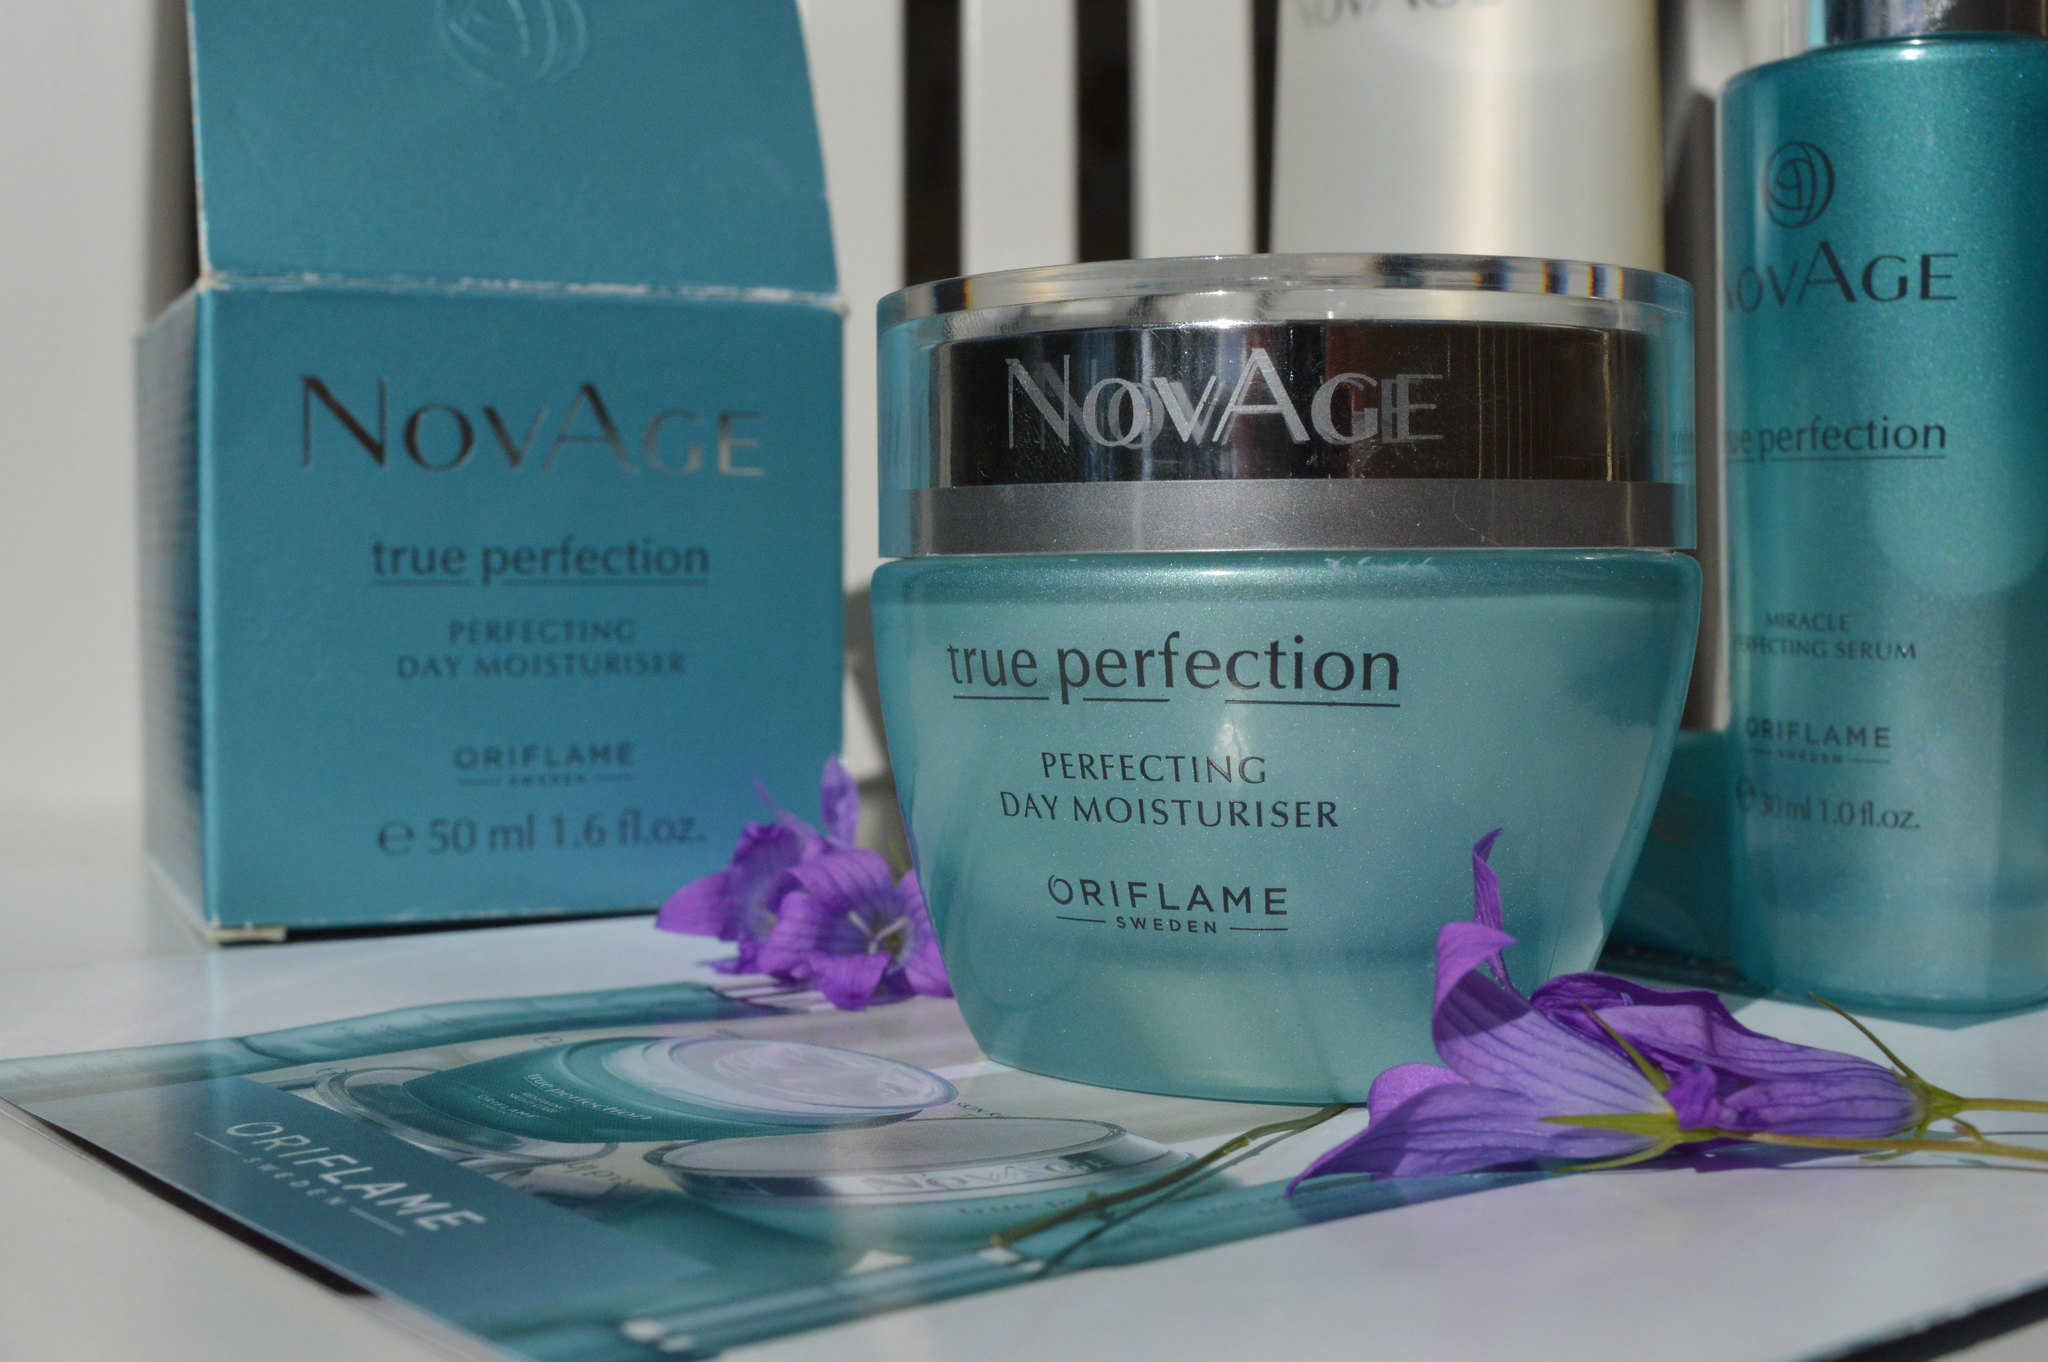 ORIFLAME NOVAGE TRUE PERFECTION DAY MOISTURISER